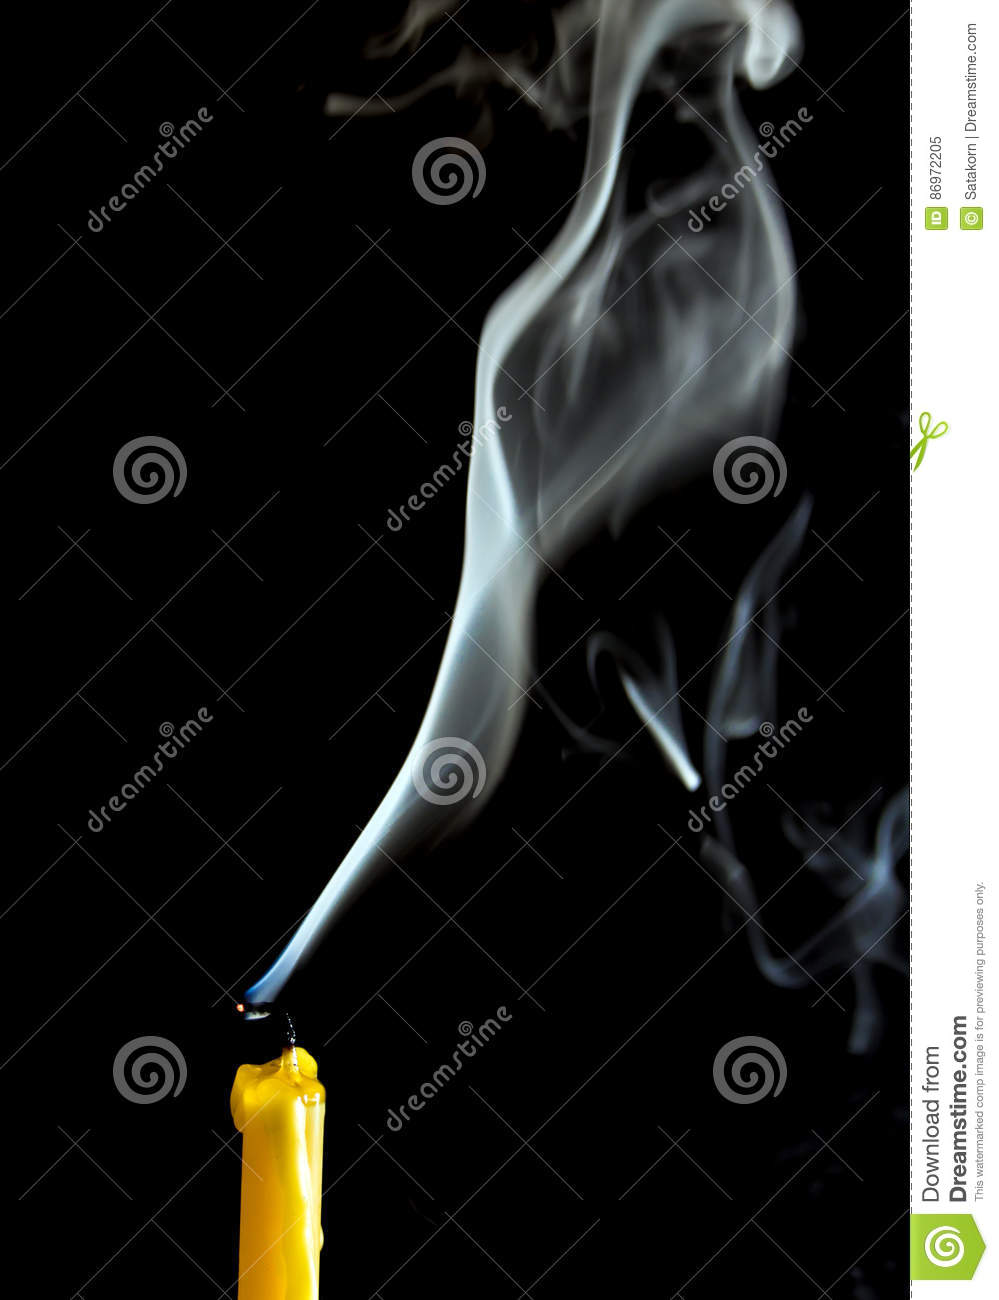 White smoke when the candle goes out